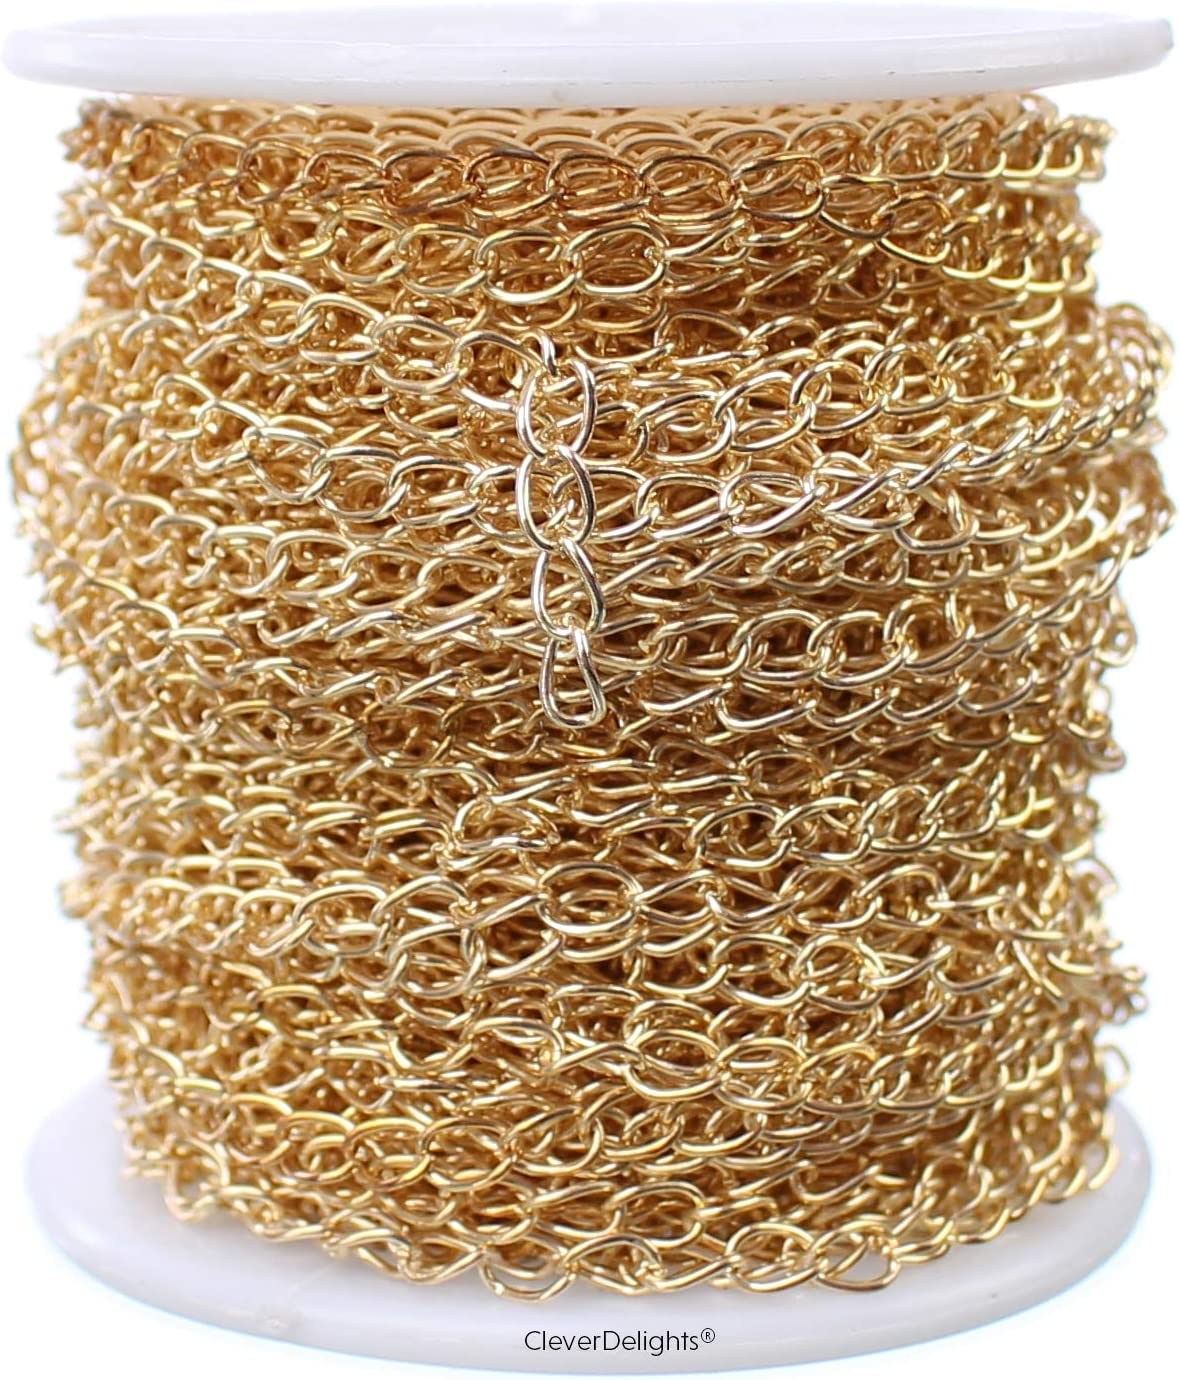 CleverDelights Curb Chain Spool - 3.5x5.5mm Link Over item handling Ranking TOP17 Champagne Gol